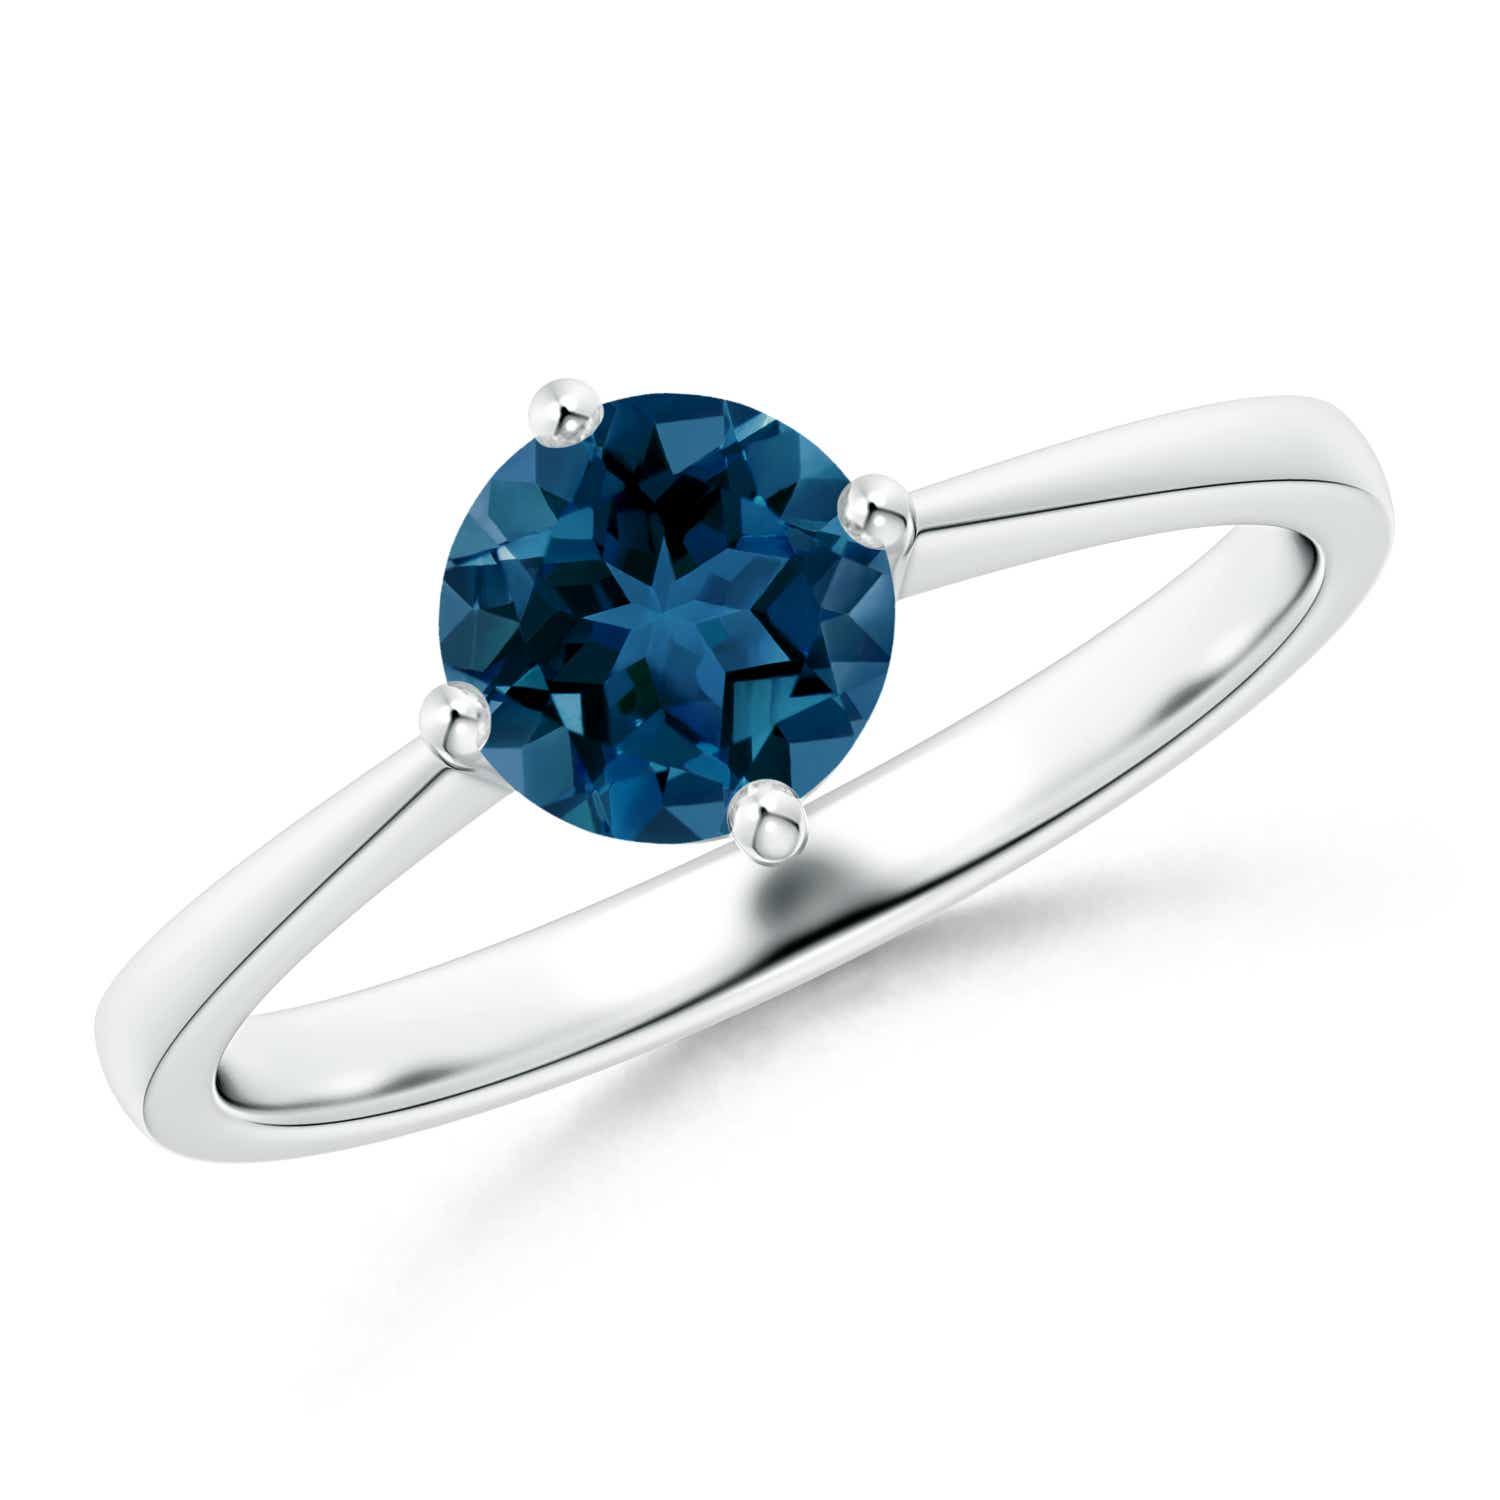 Angara Solitaire London Blue Topaz Engagement Ring in Platinum